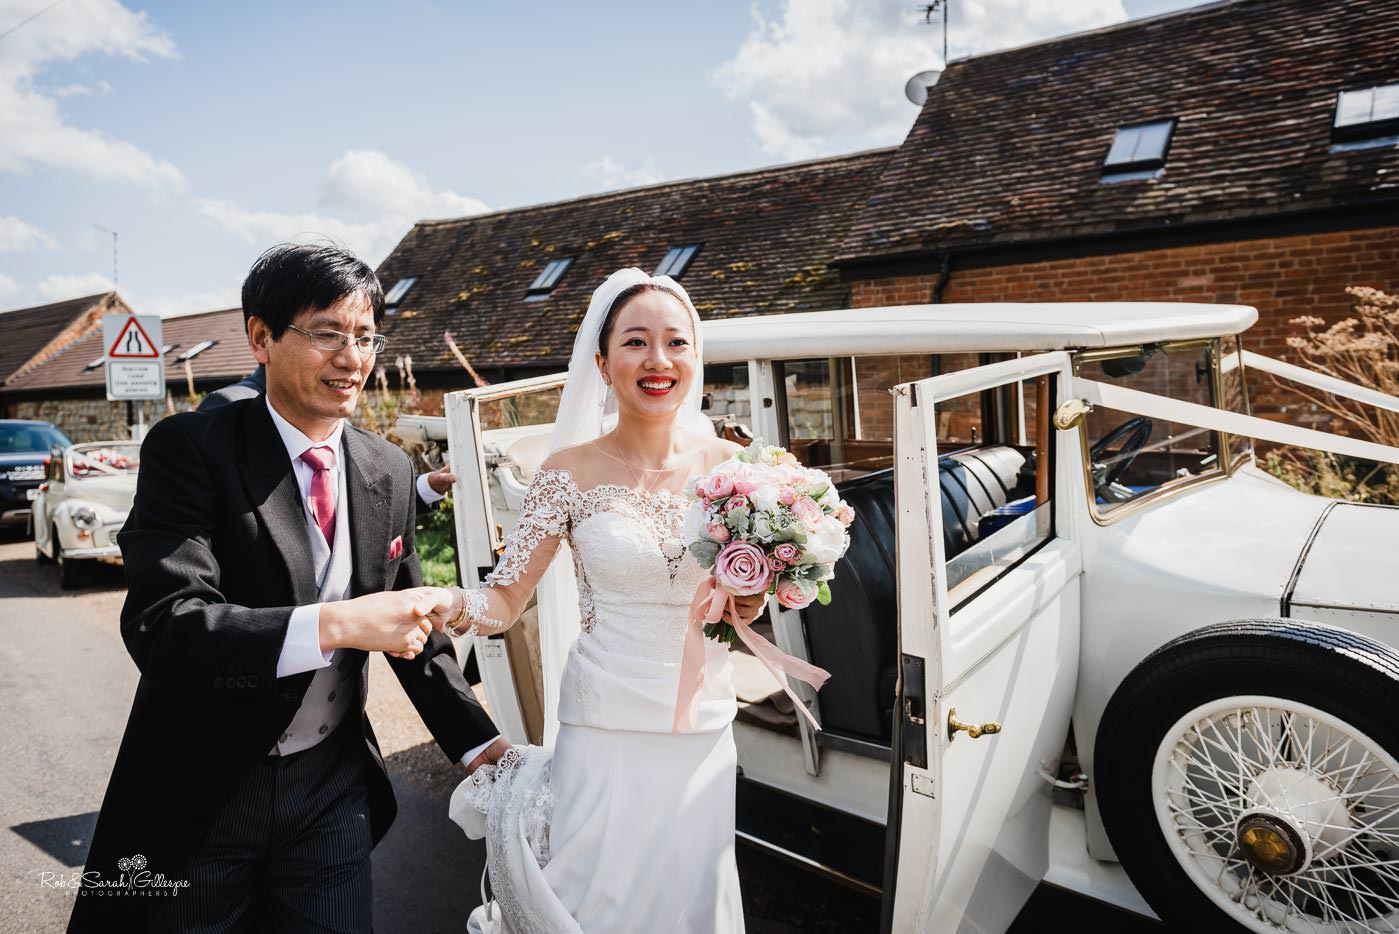 Wedding at St Peter's church Bourton-on-Dunsmore